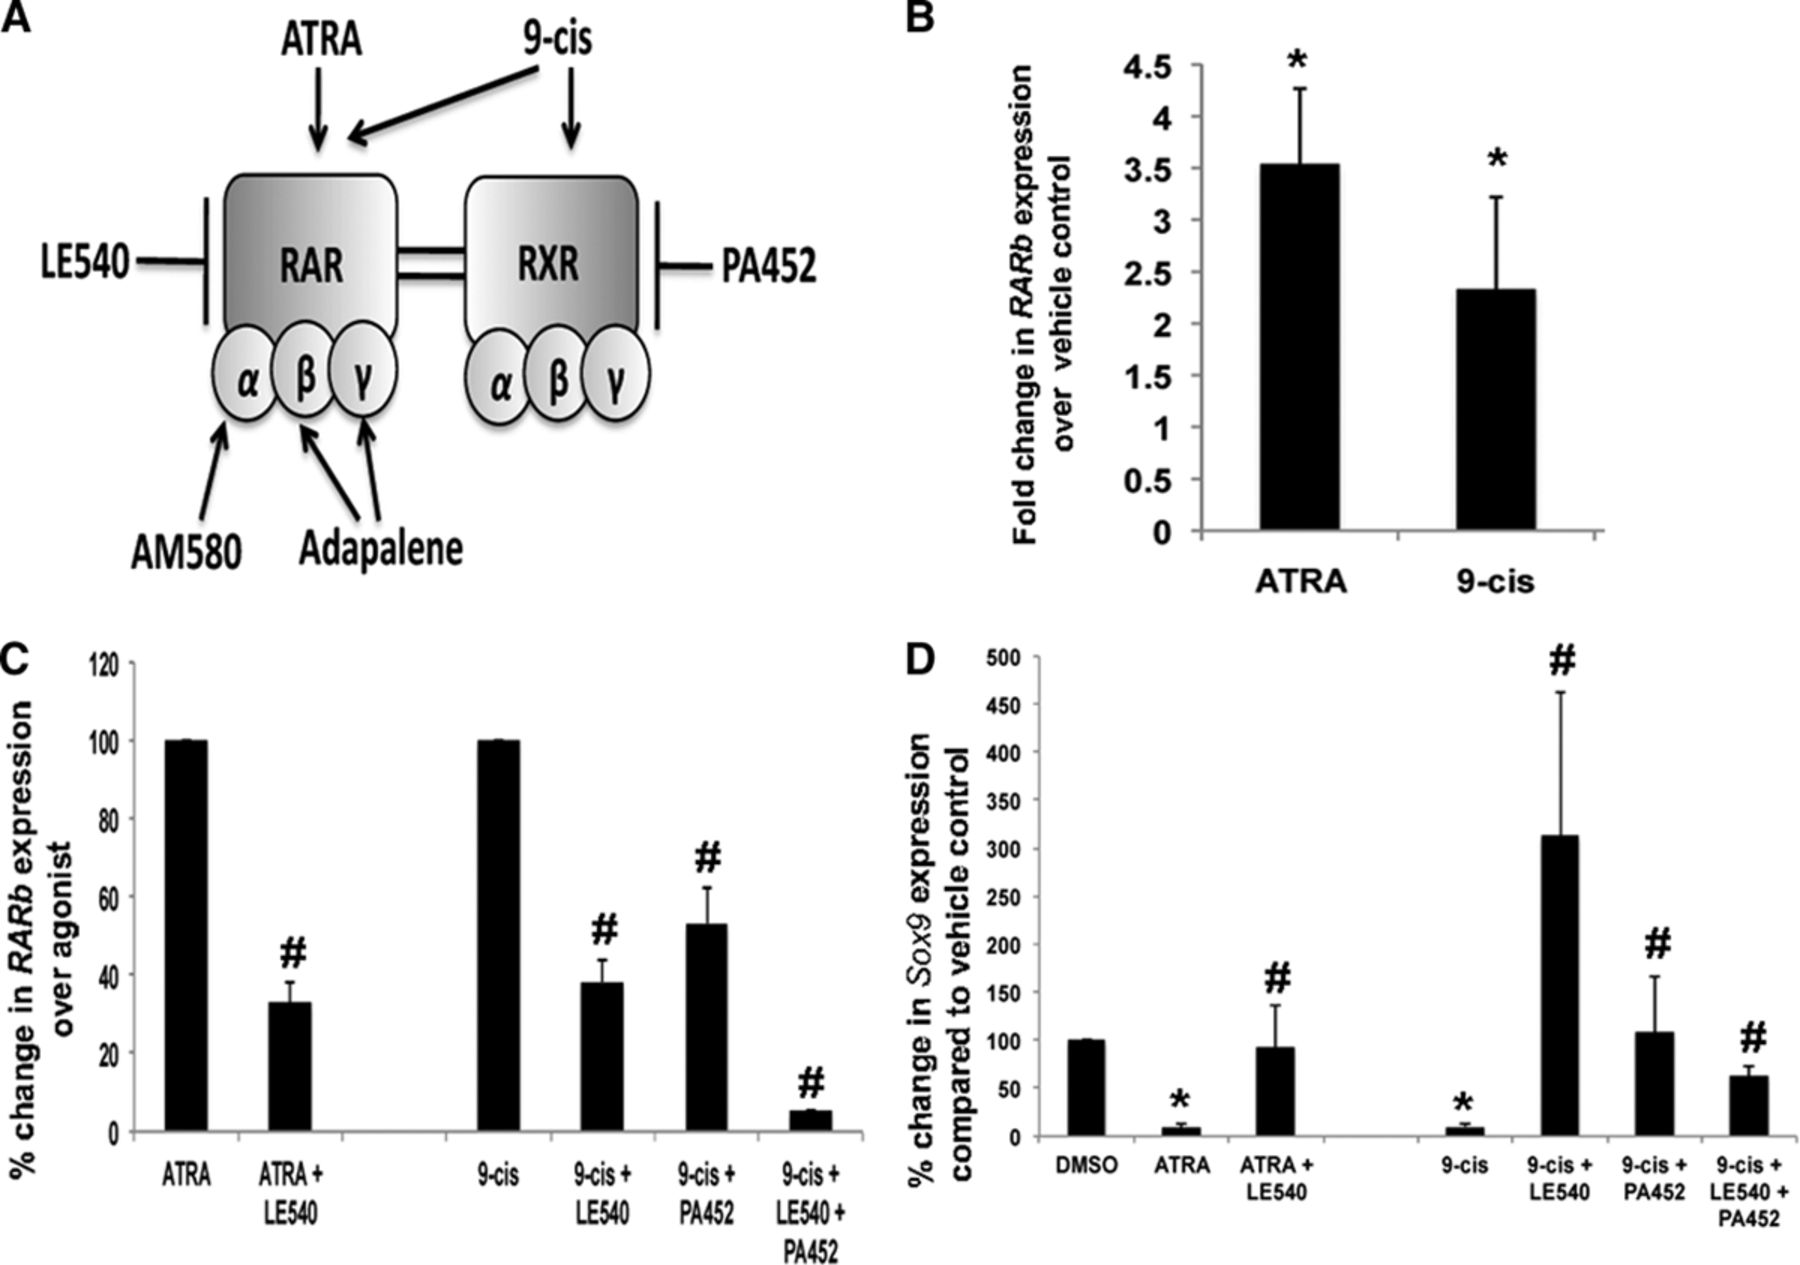 Increasedtary Intake Of Vitamin A Promotes Aortic